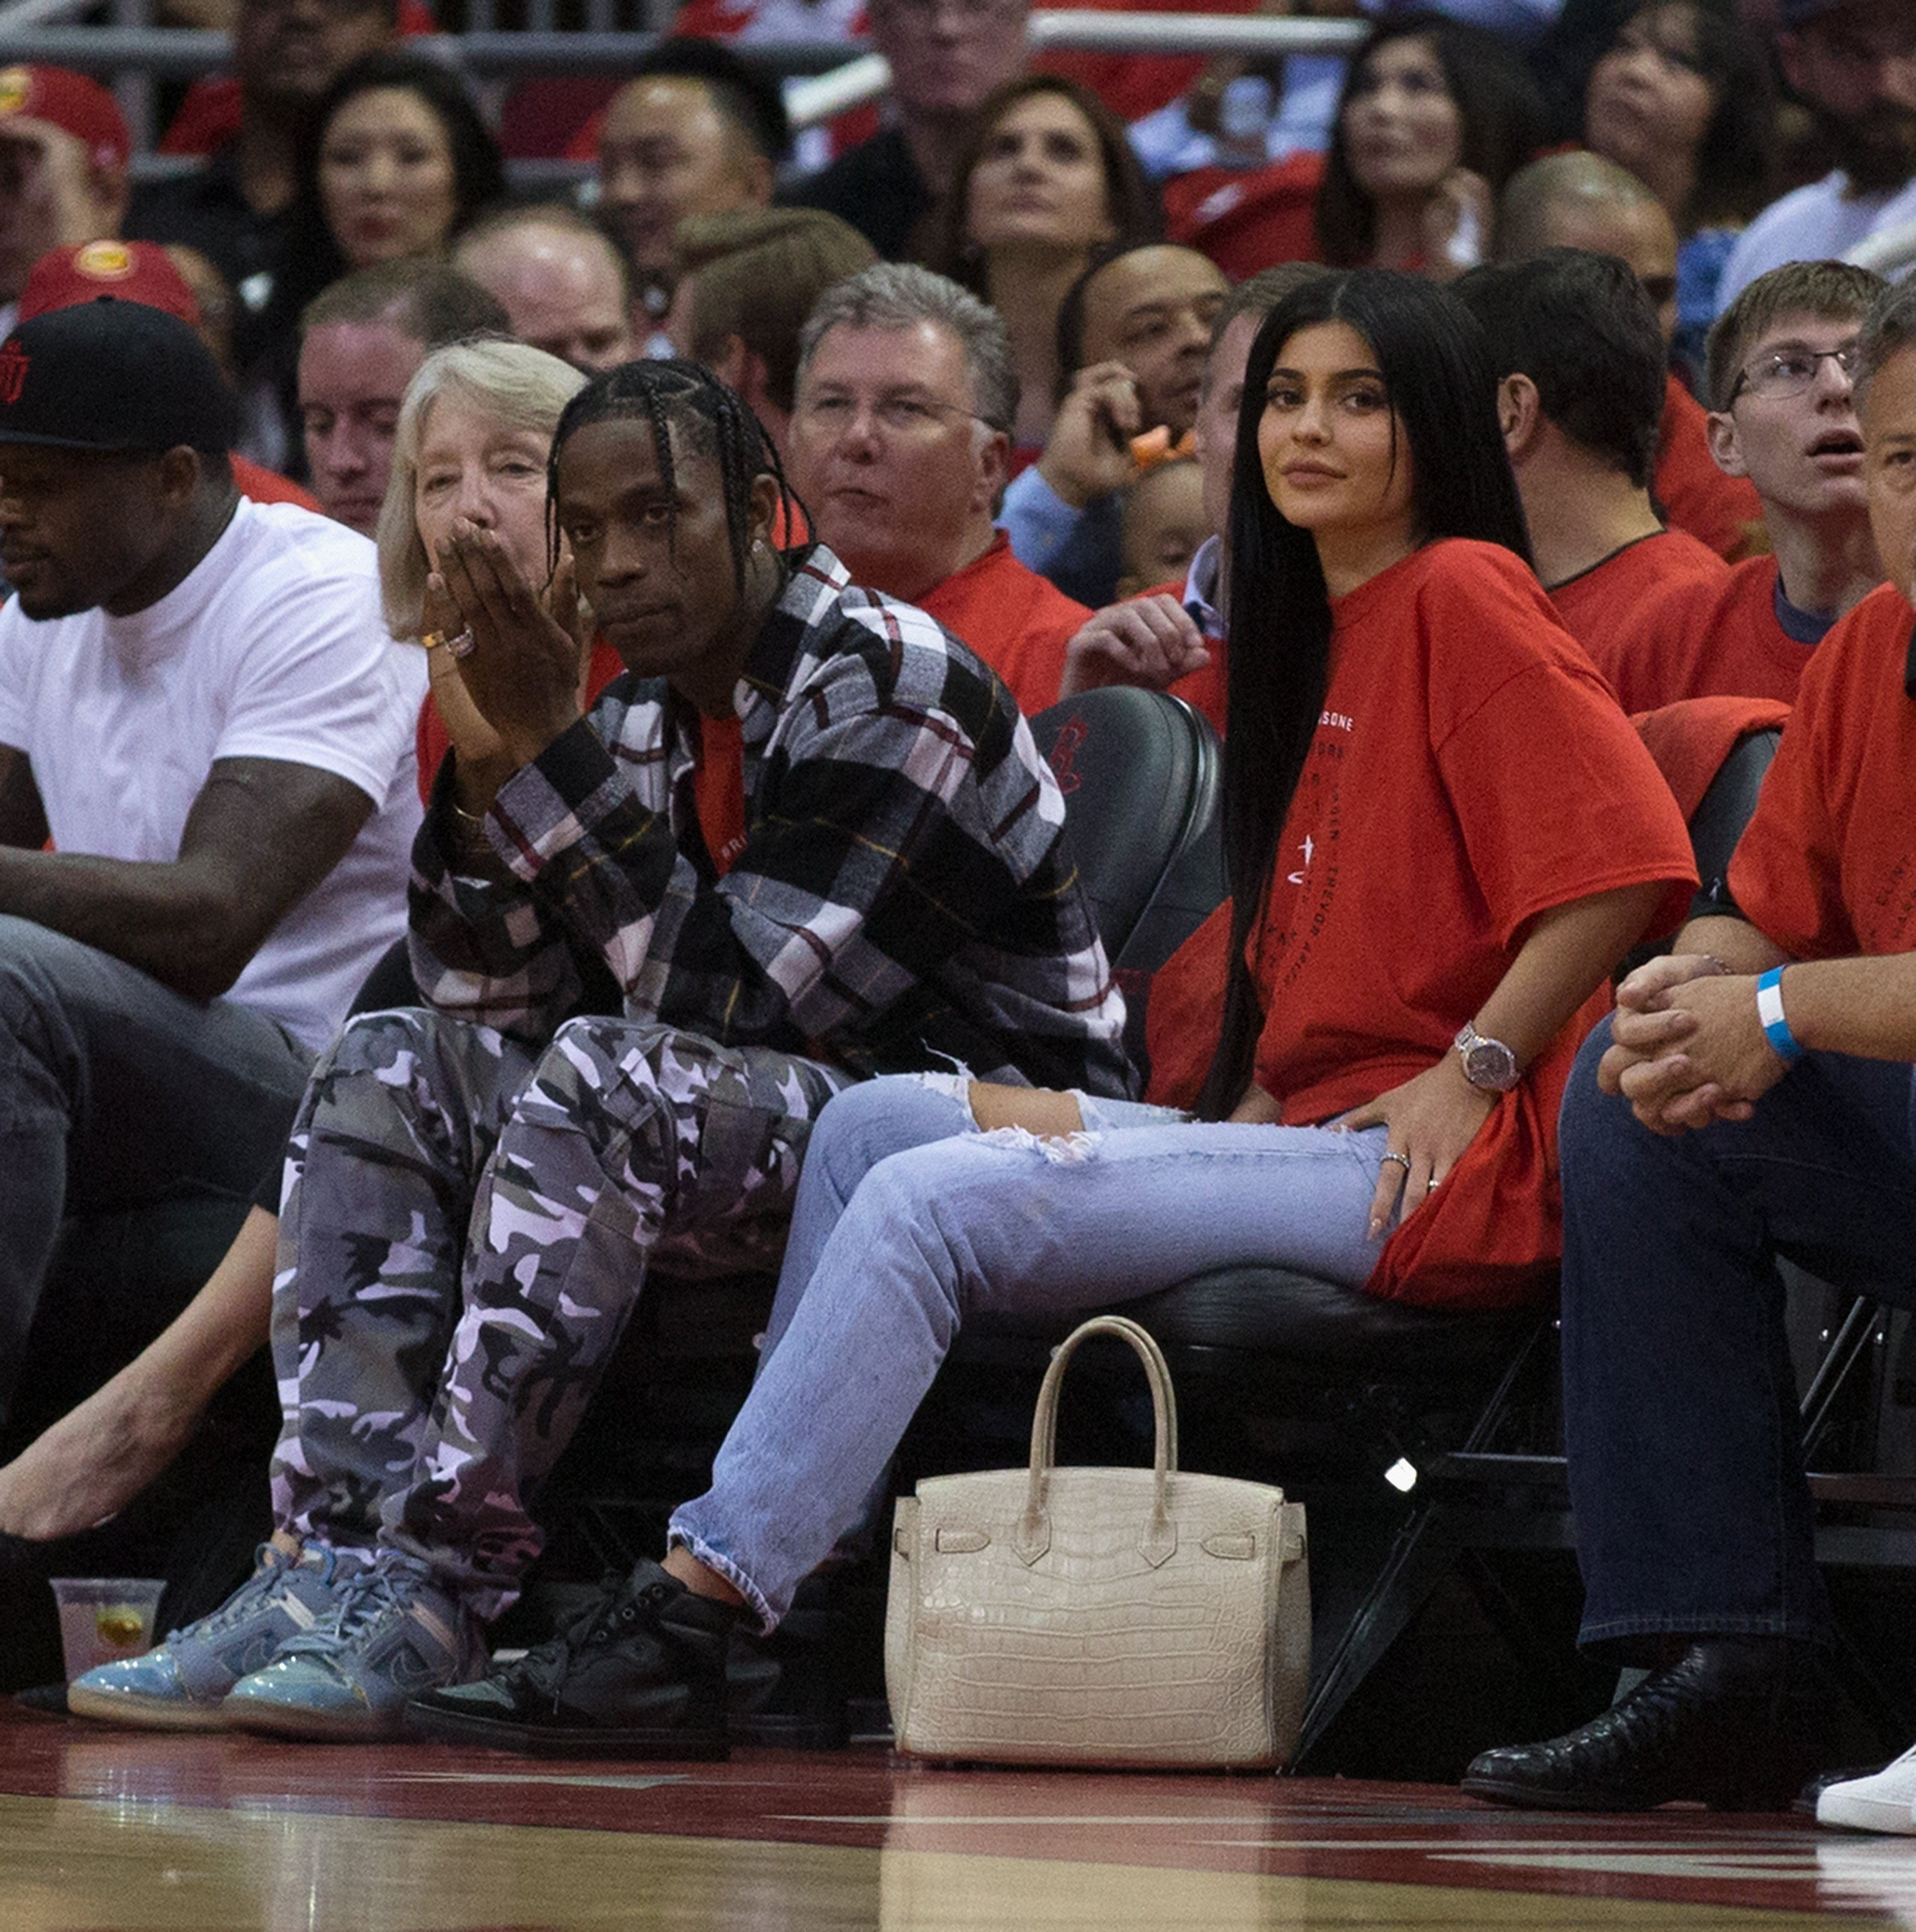 Travis Scott and Kylie Jenner watch courtside during Game Five of the Western Conference Quarterfinals game of the 2017 NBA Playoffs on April 25, 2017 in Houston